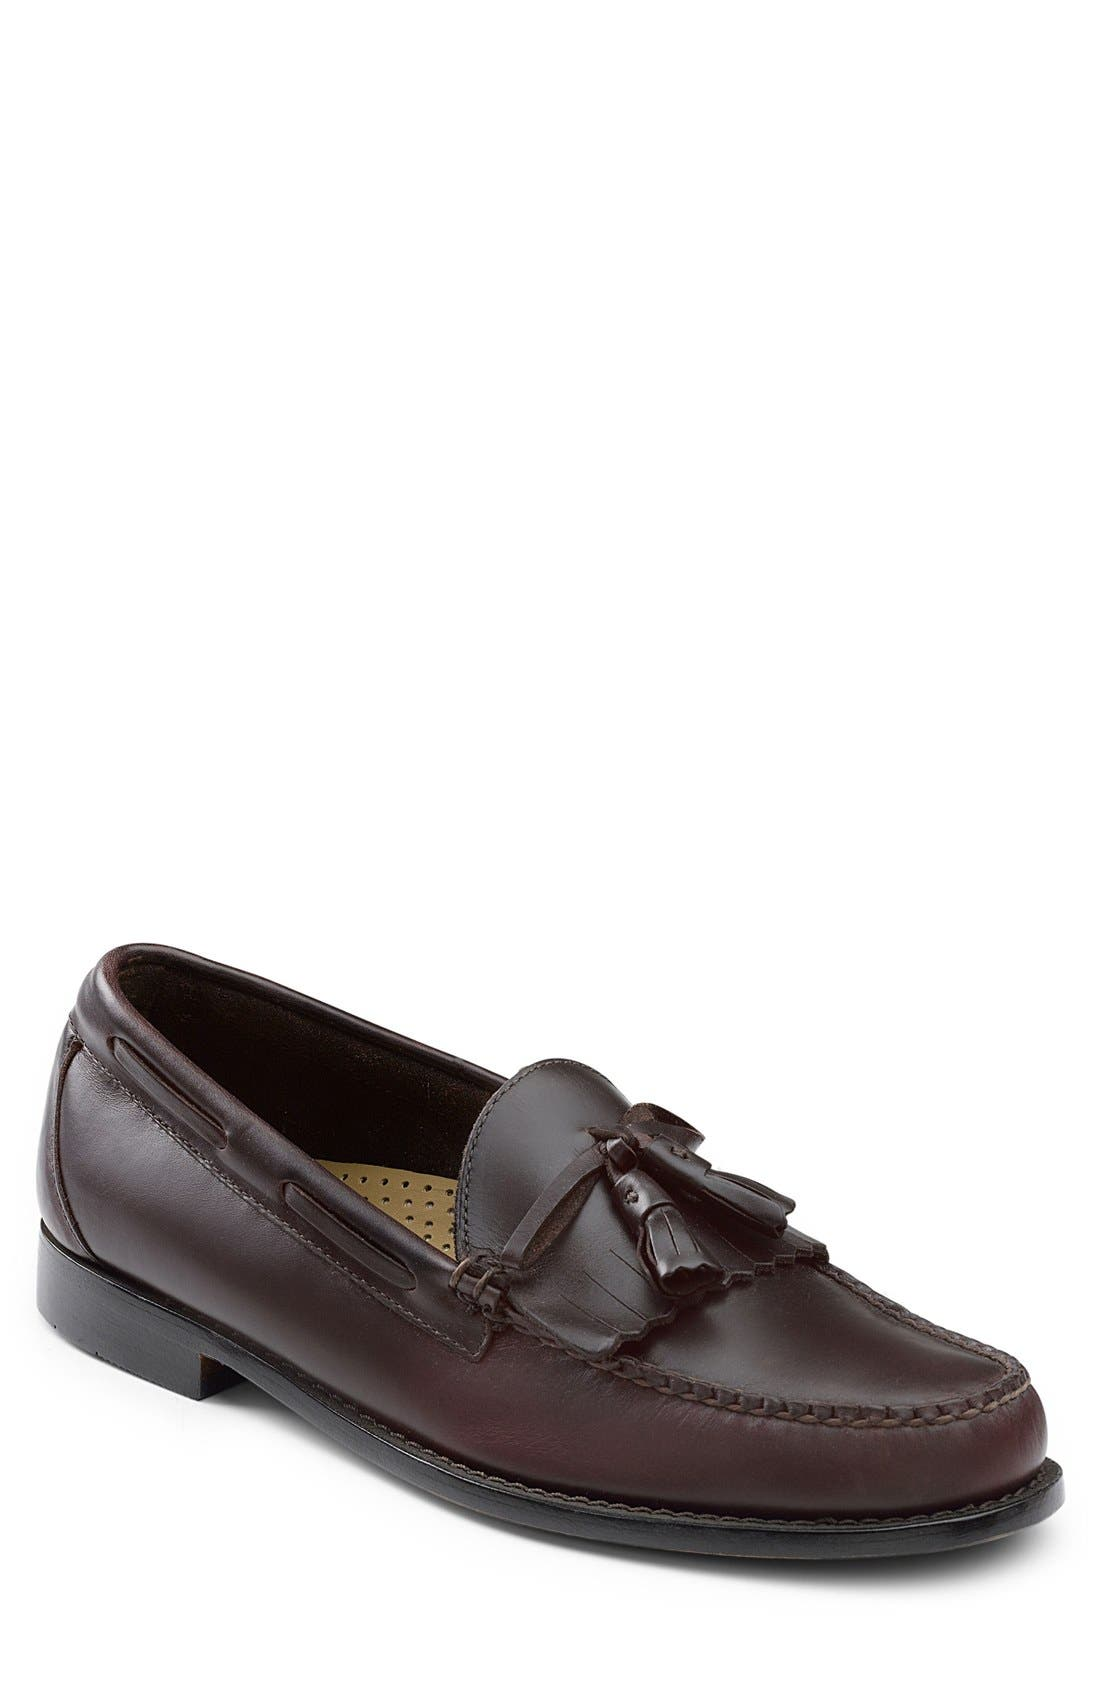 'Lawrence' Tassel Loafer,                             Alternate thumbnail 14, color,